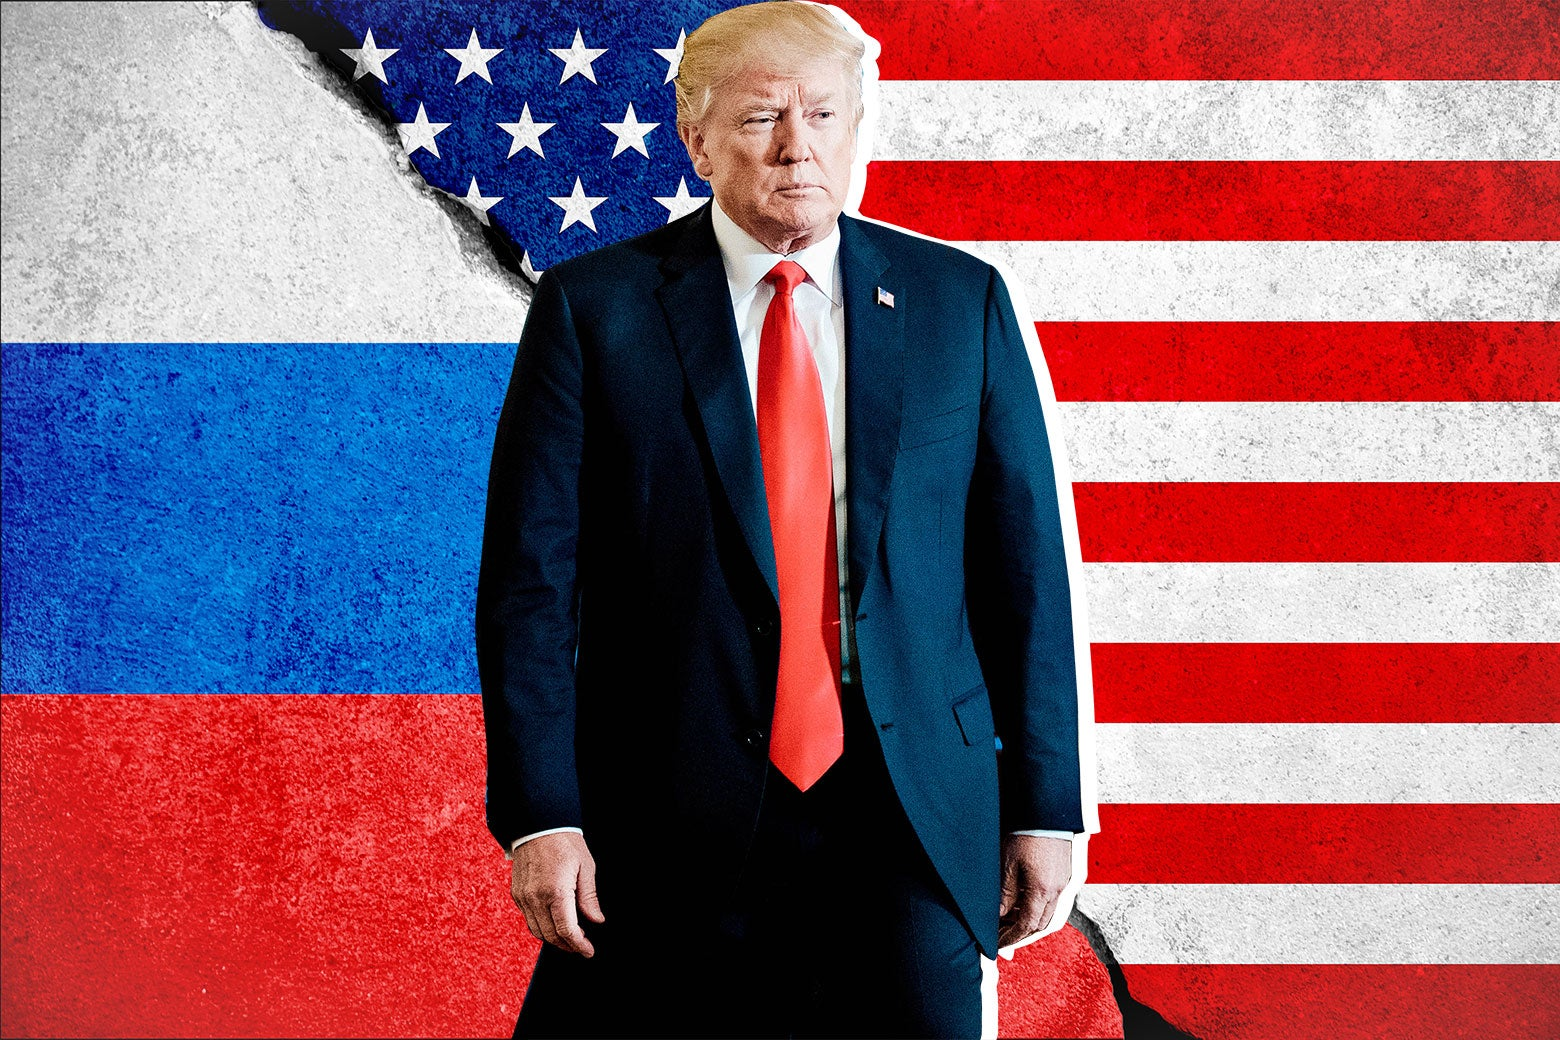 Photo illustration: Donald Trump stands in front of the U.S. and Russian flags.